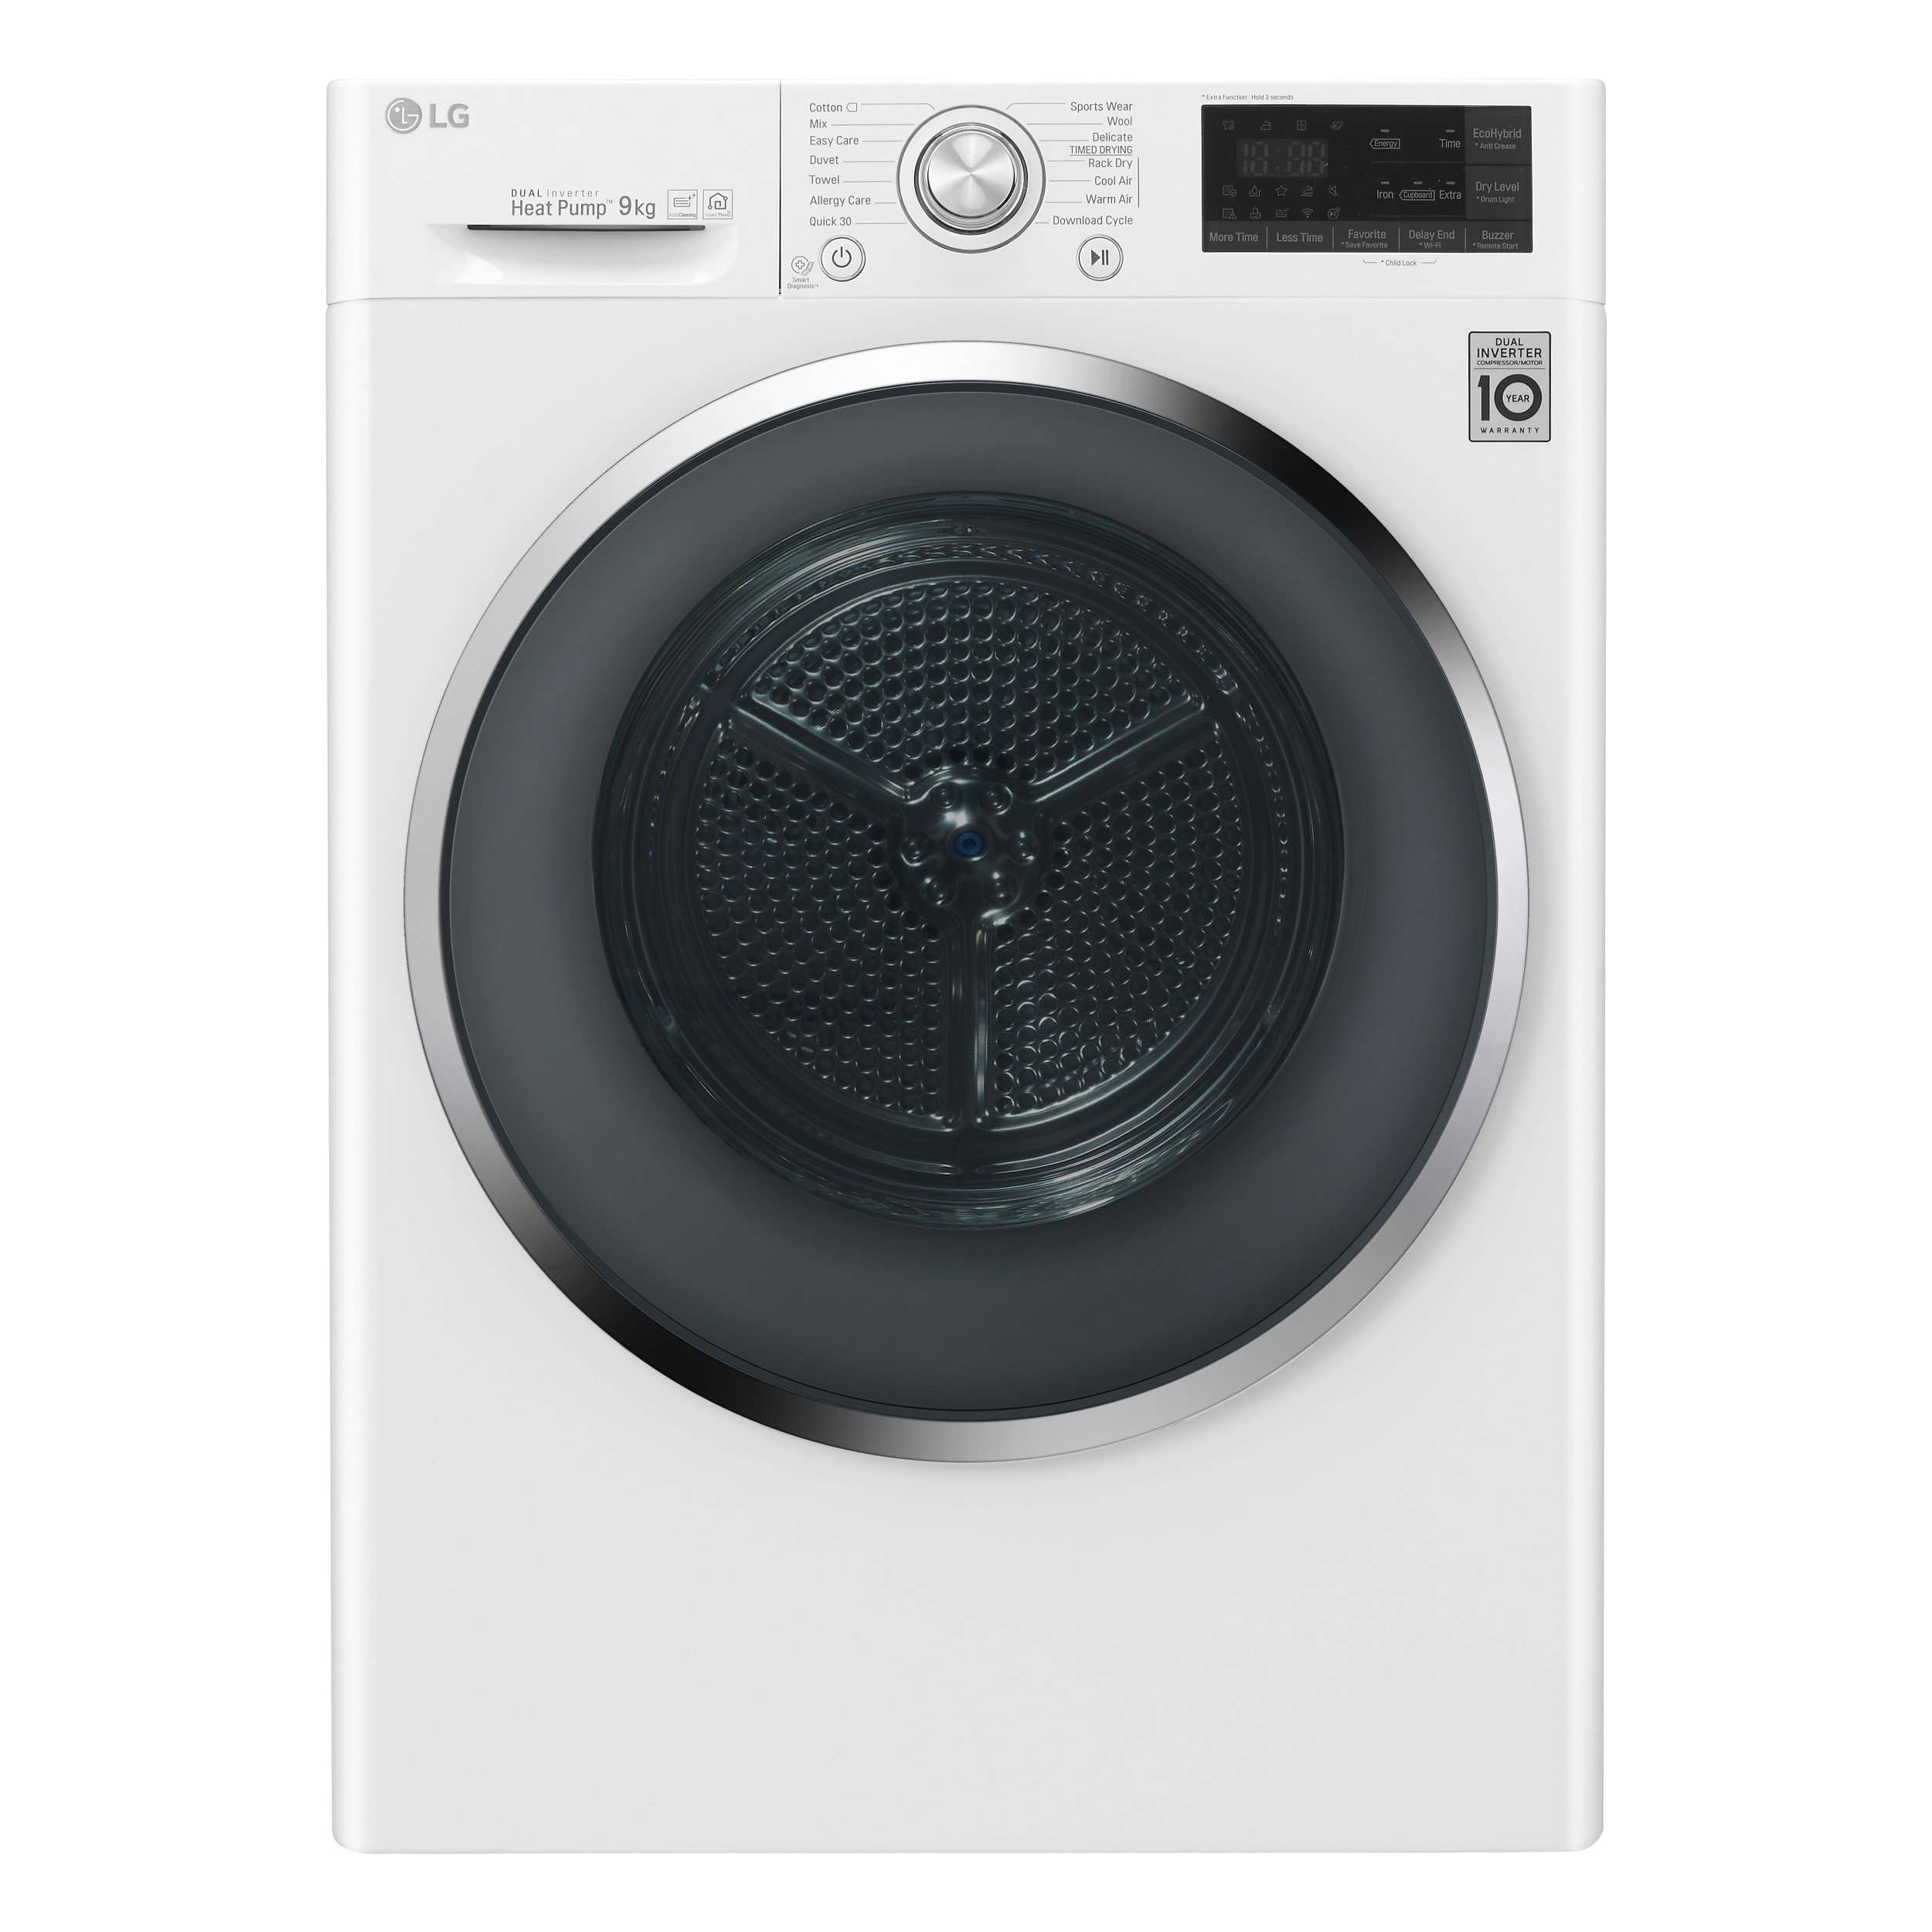 LG DUAL Inverter Heat Pump Dryer